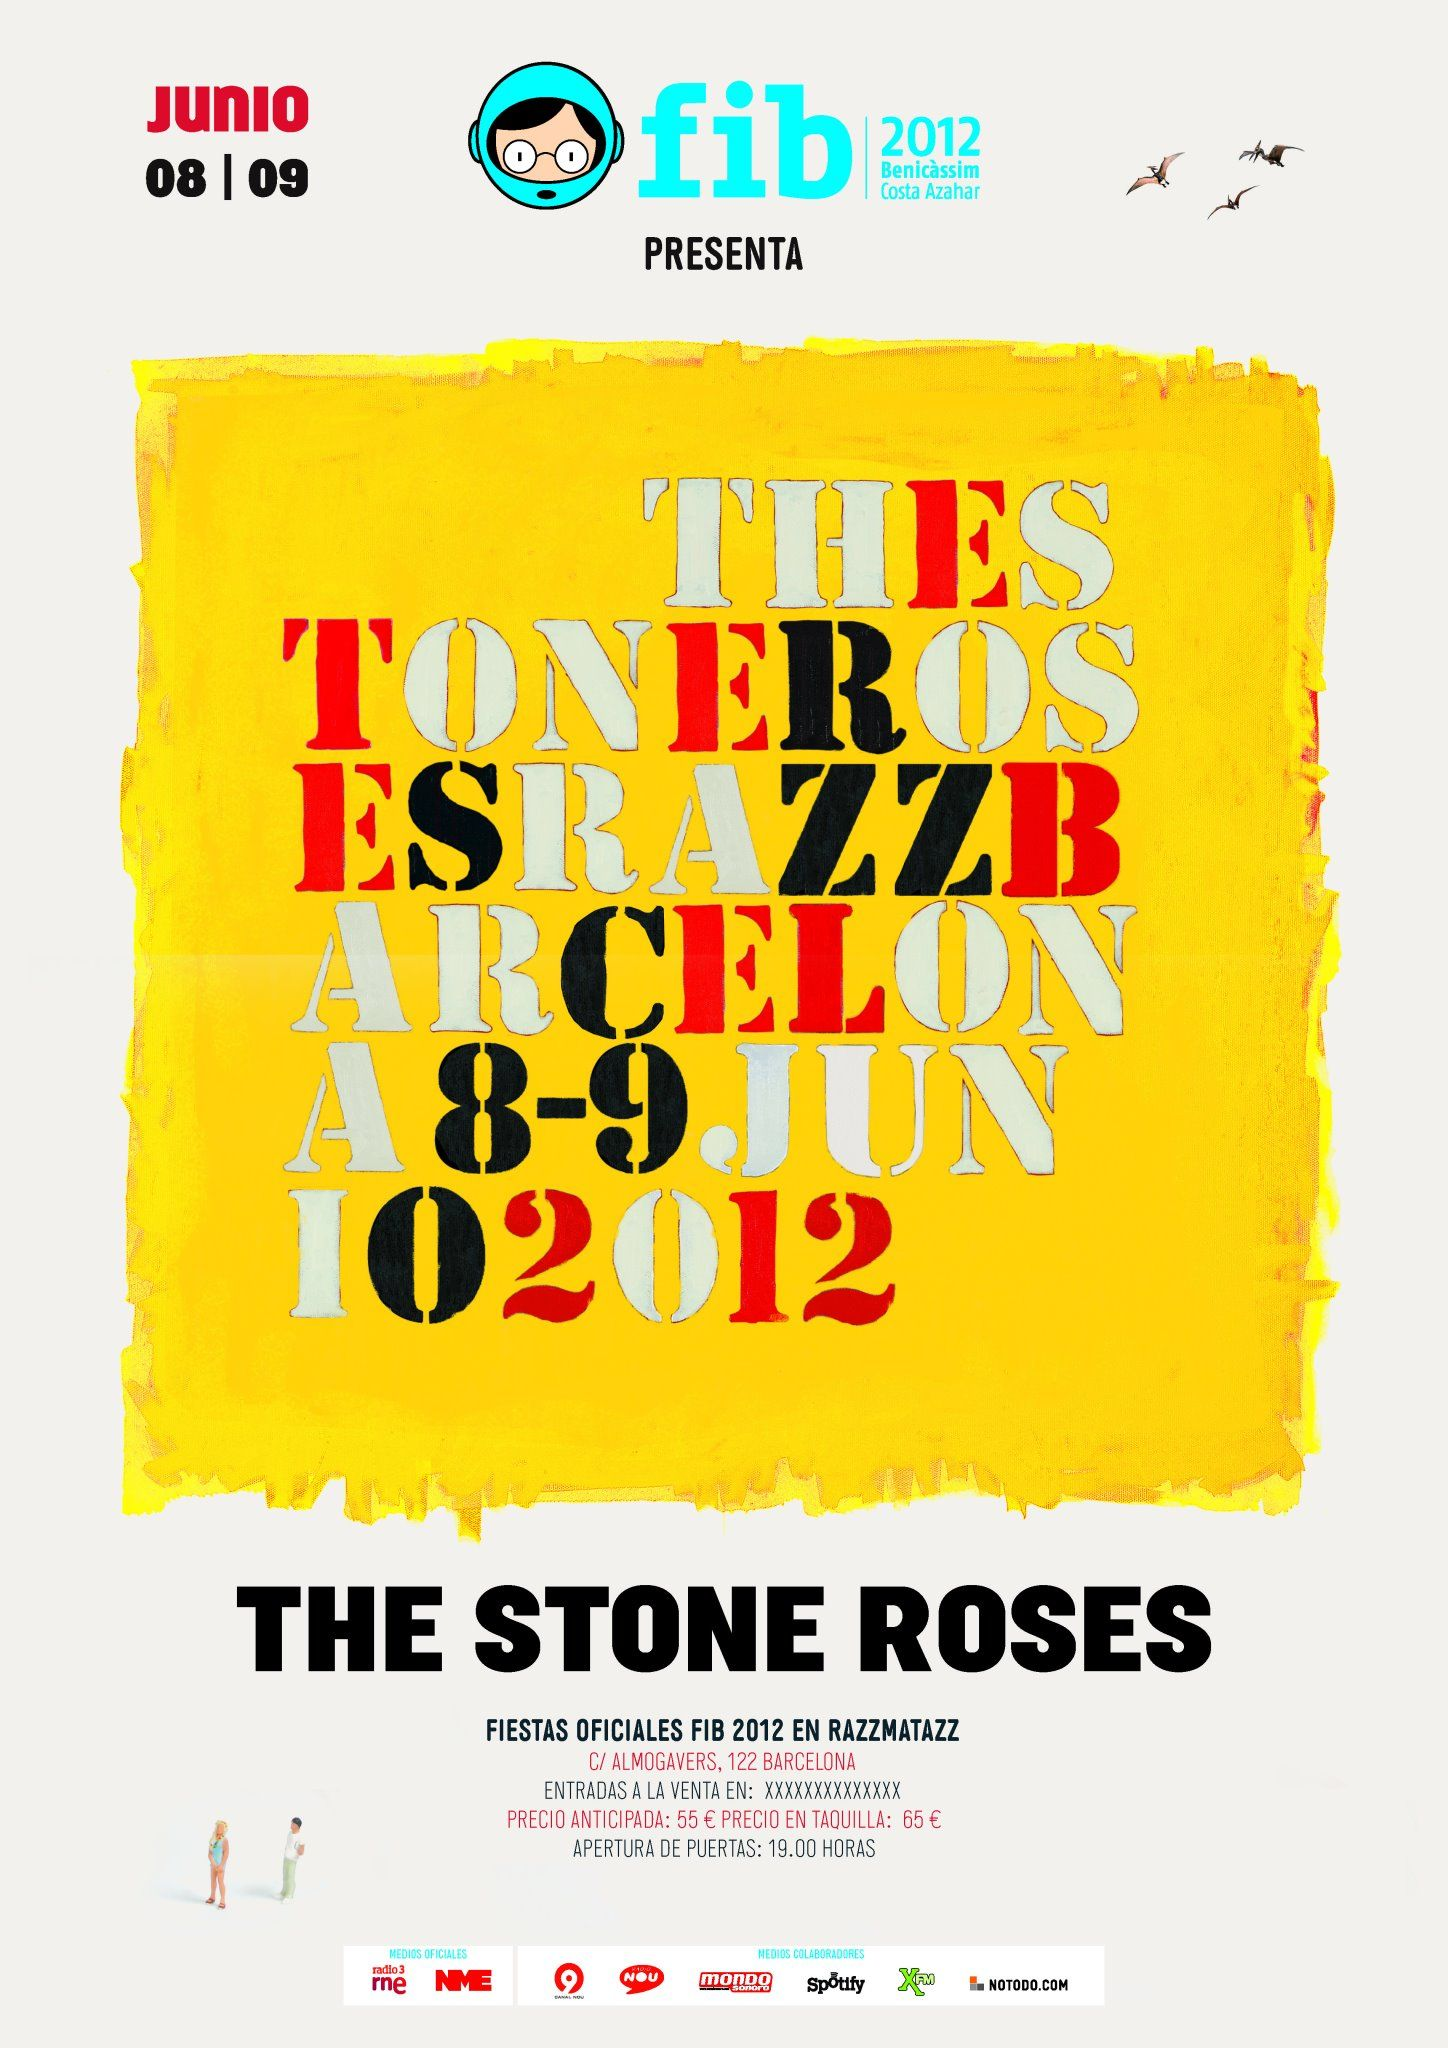 Pin by Anthony Massey on Band posters in 2019 | Stone roses